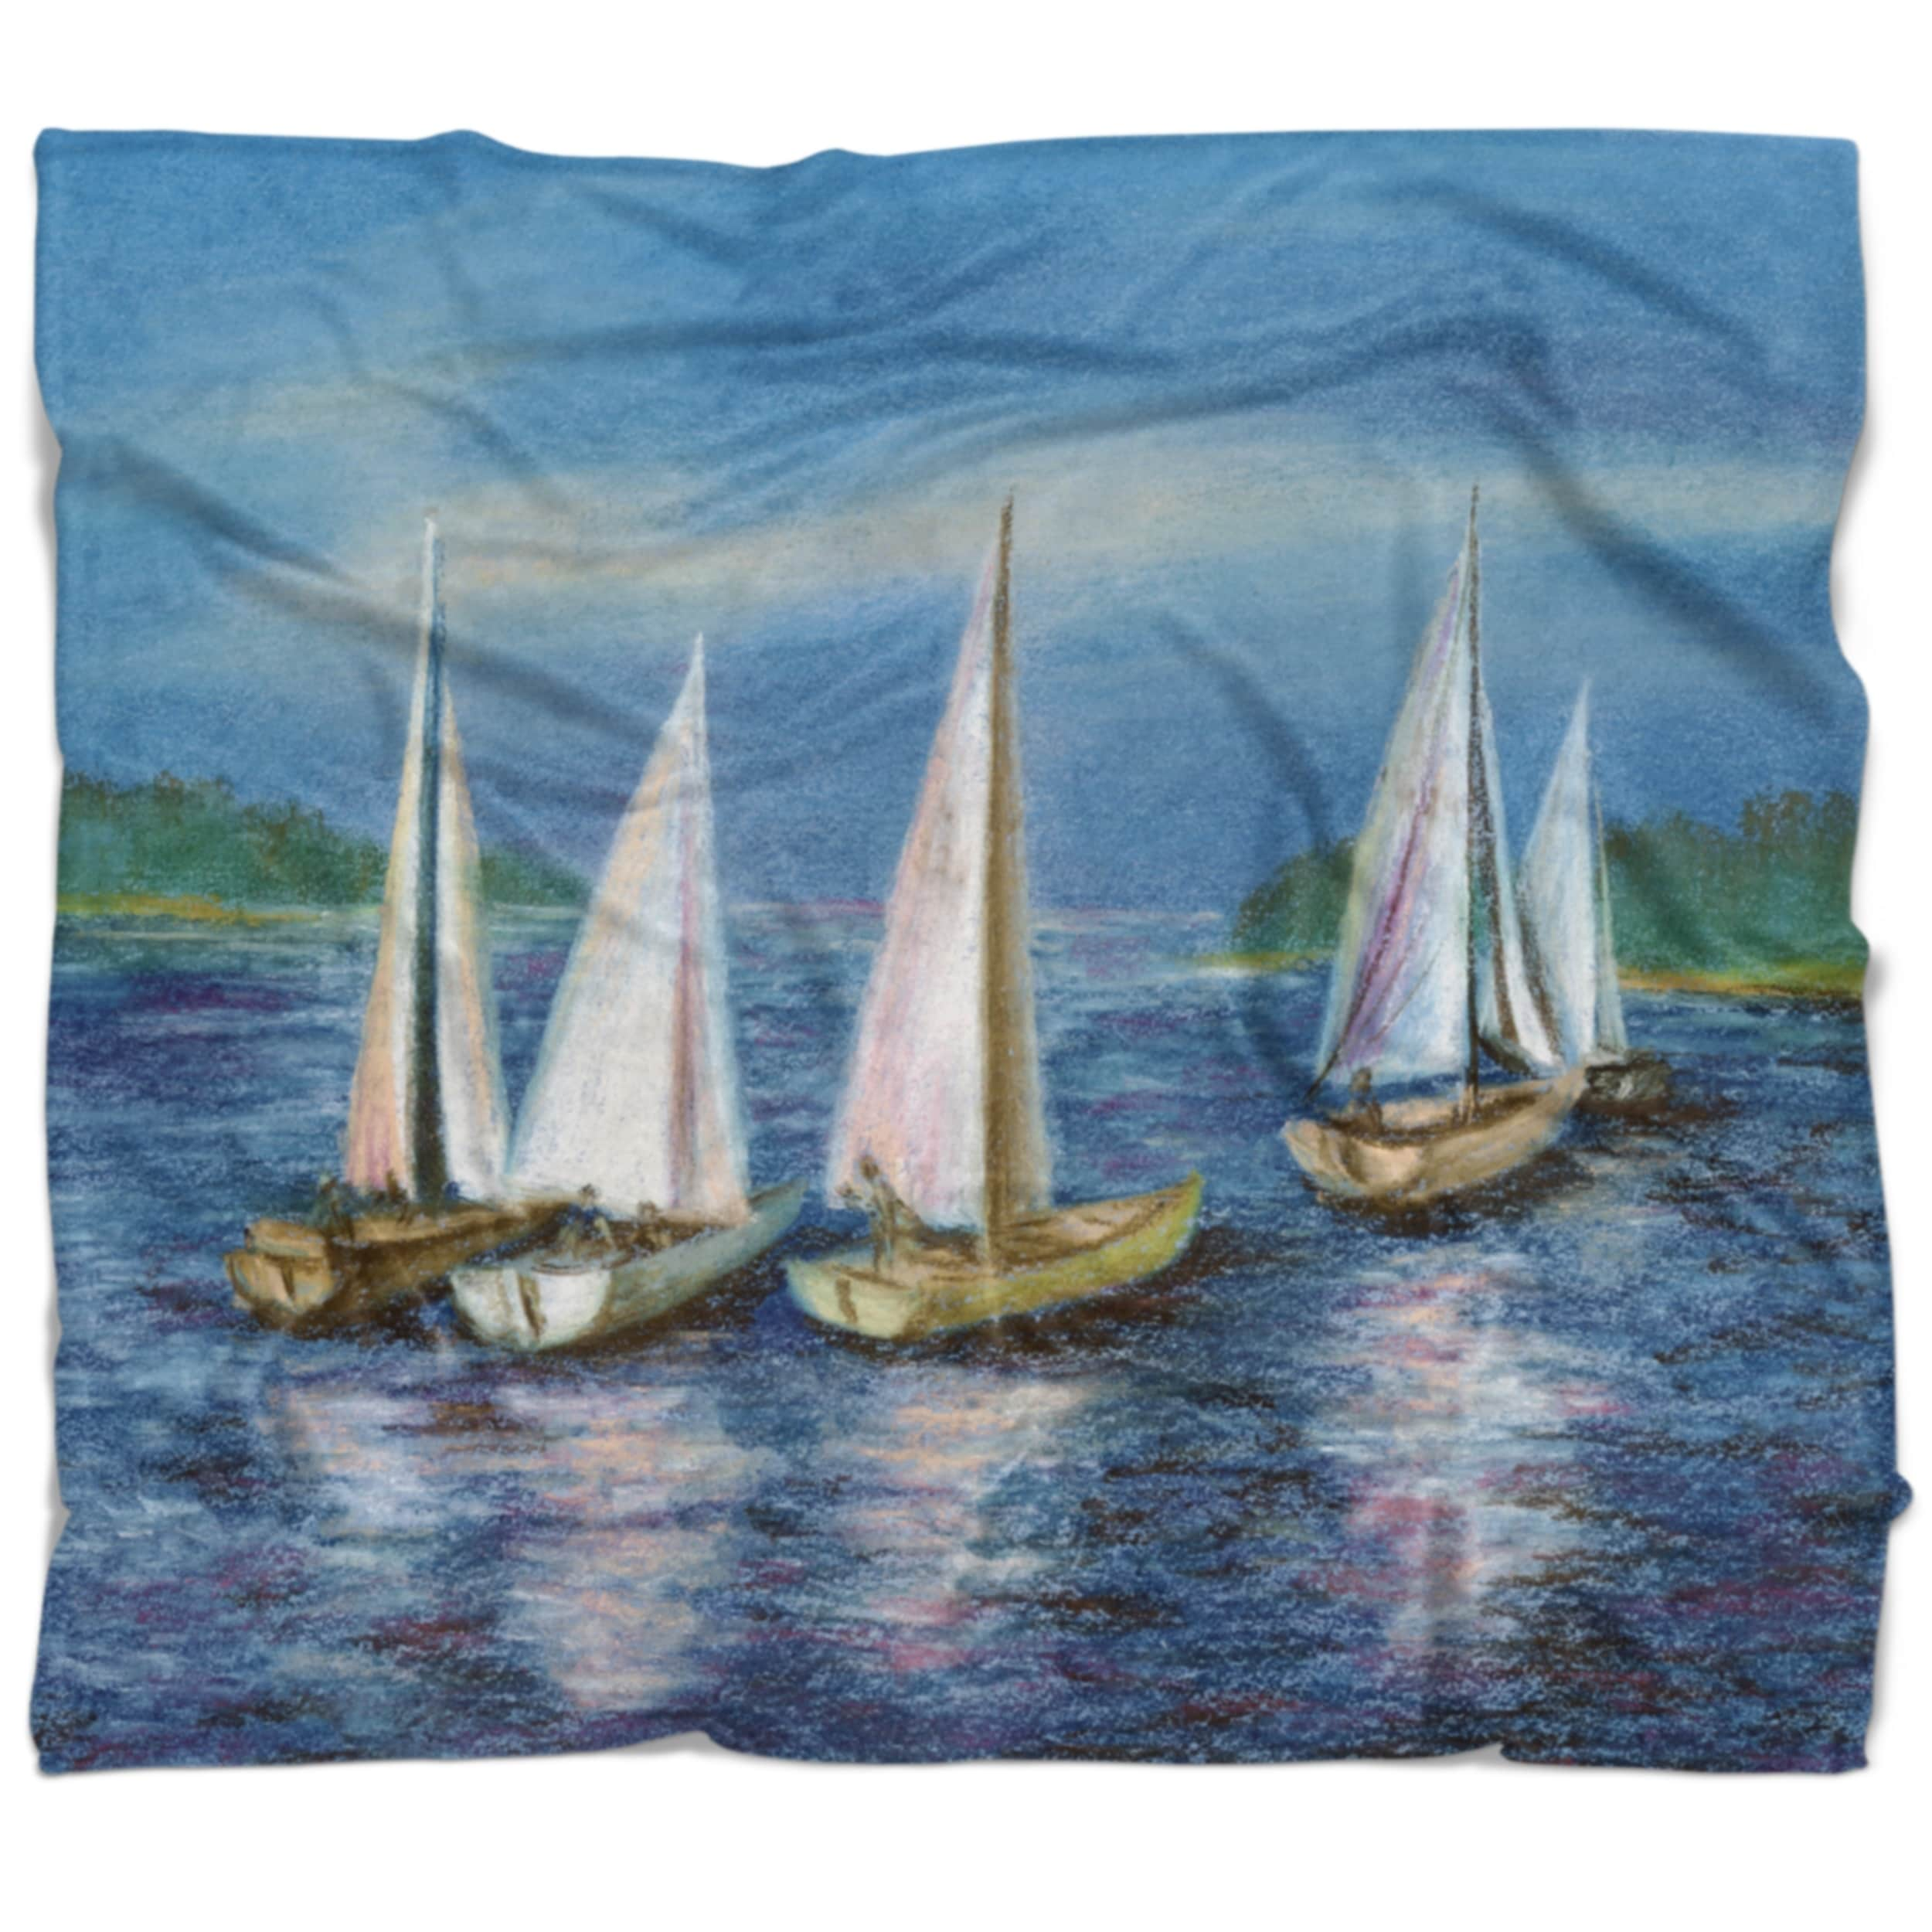 Designart Yachts By Obsky Sea Seascape Throw Blanket On Sale Overstock 20911175 71 In X 59 In